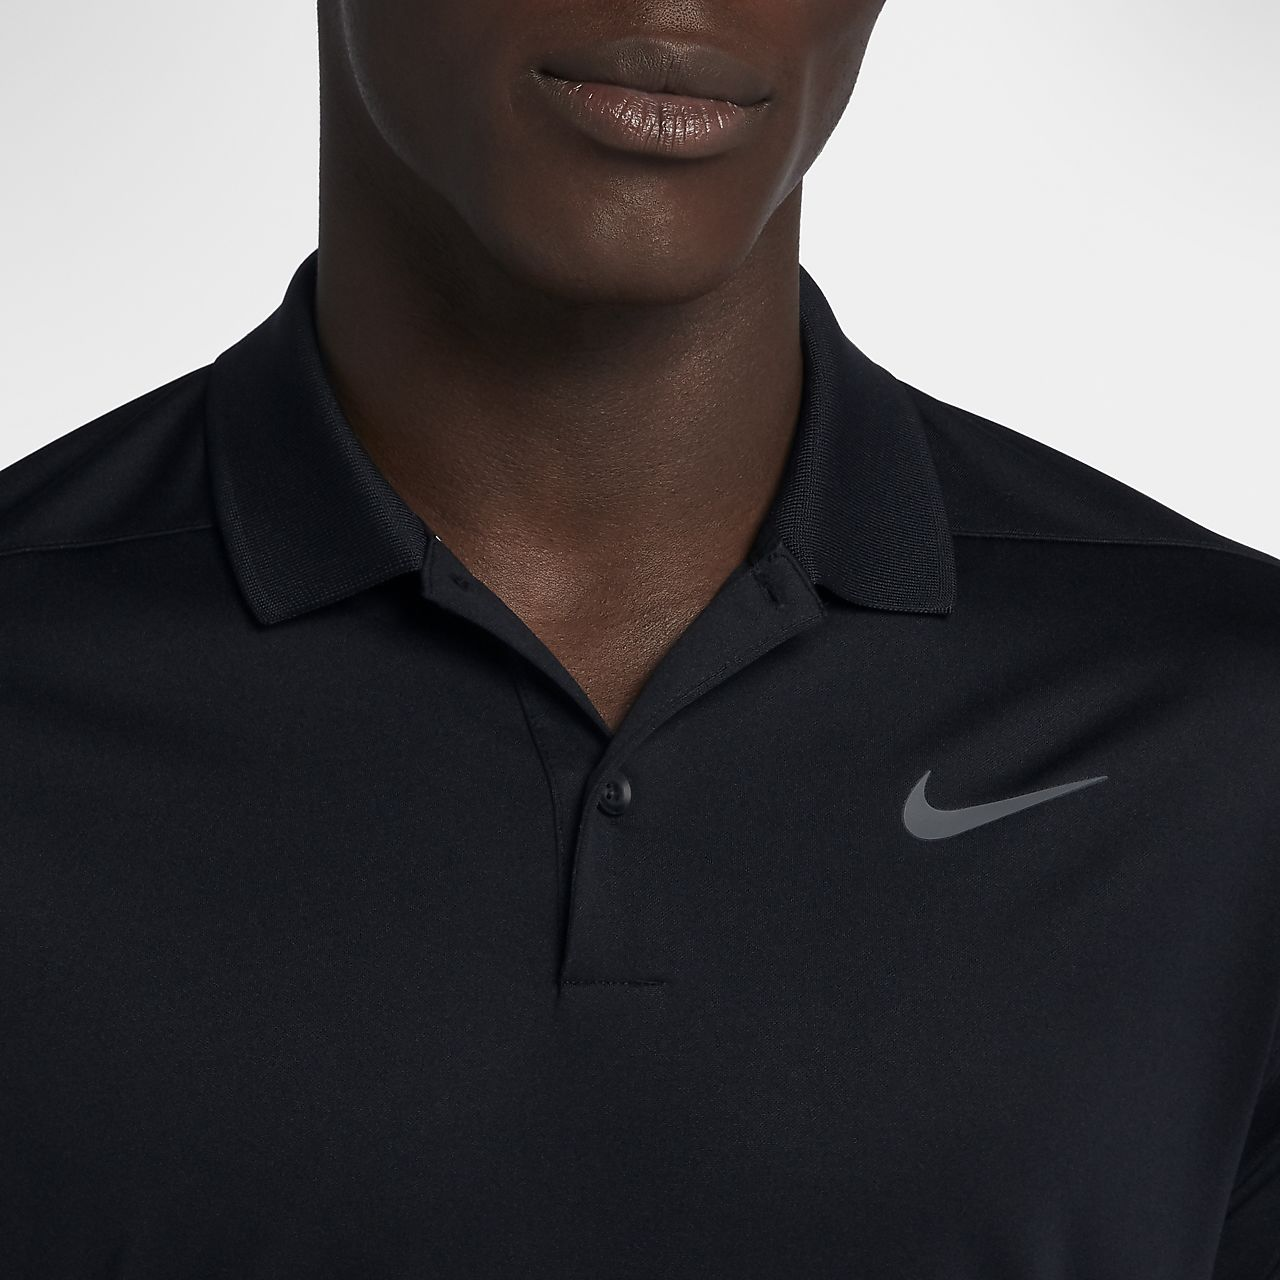 715a7acb Nike Dri-FIT Victory Men's Golf Polo. Nike.com SE